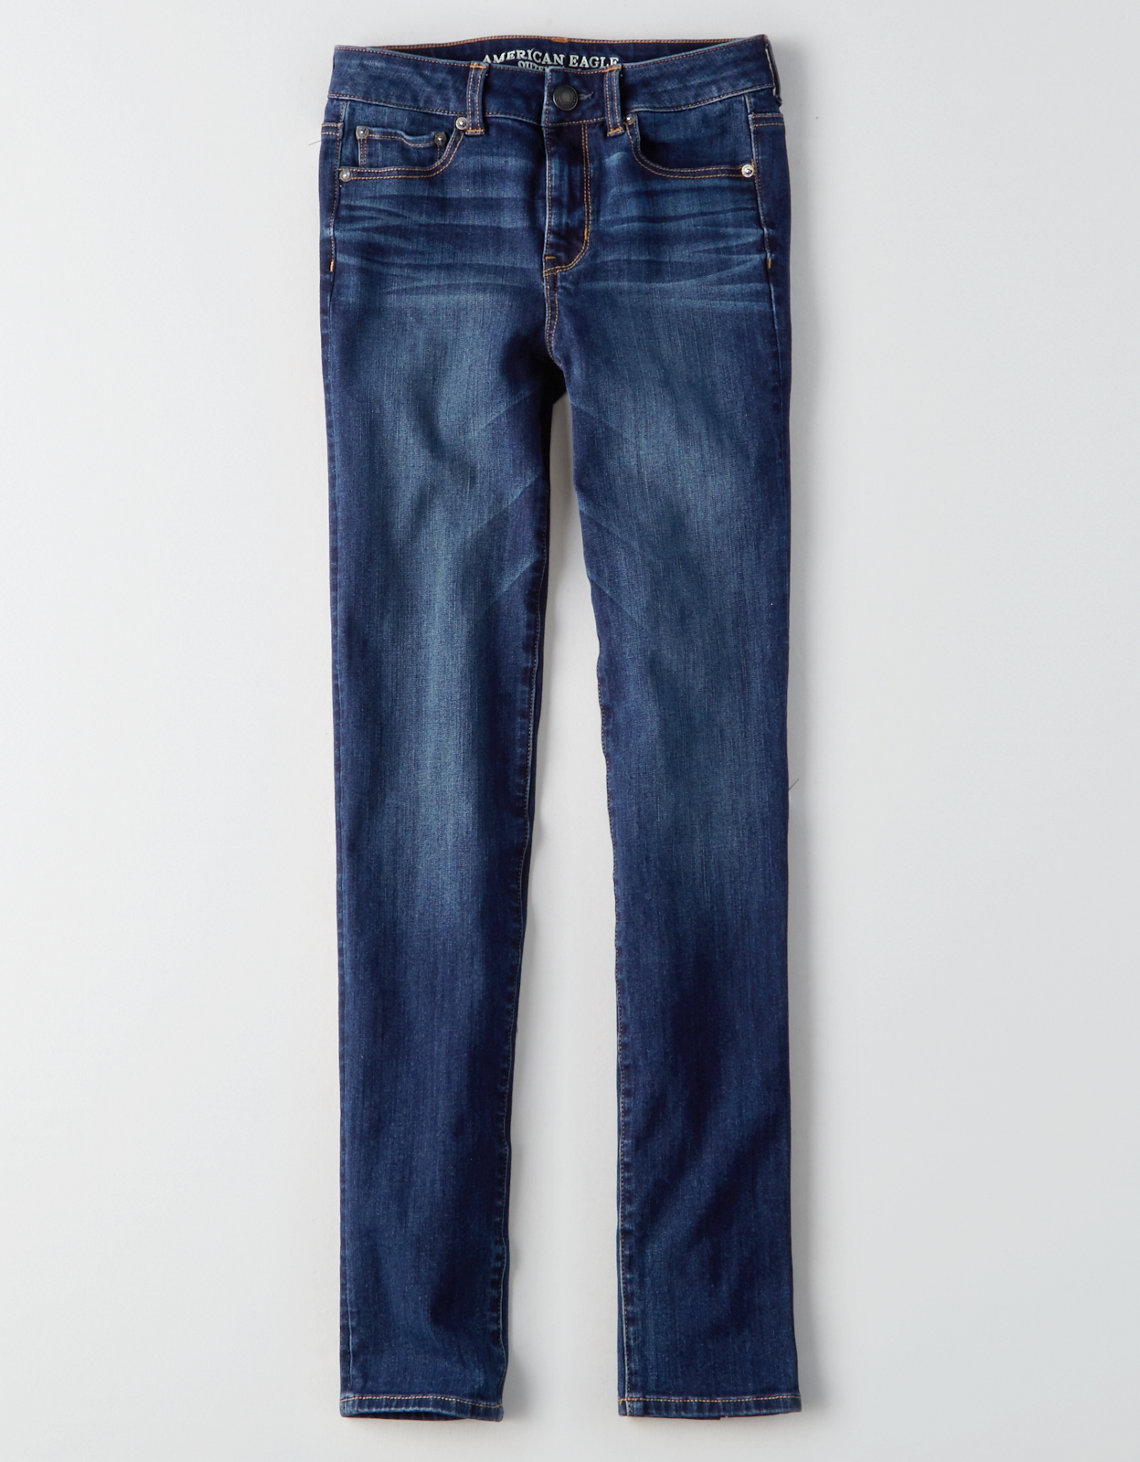 AE Denim X4 Hi-Rise Straight Jean